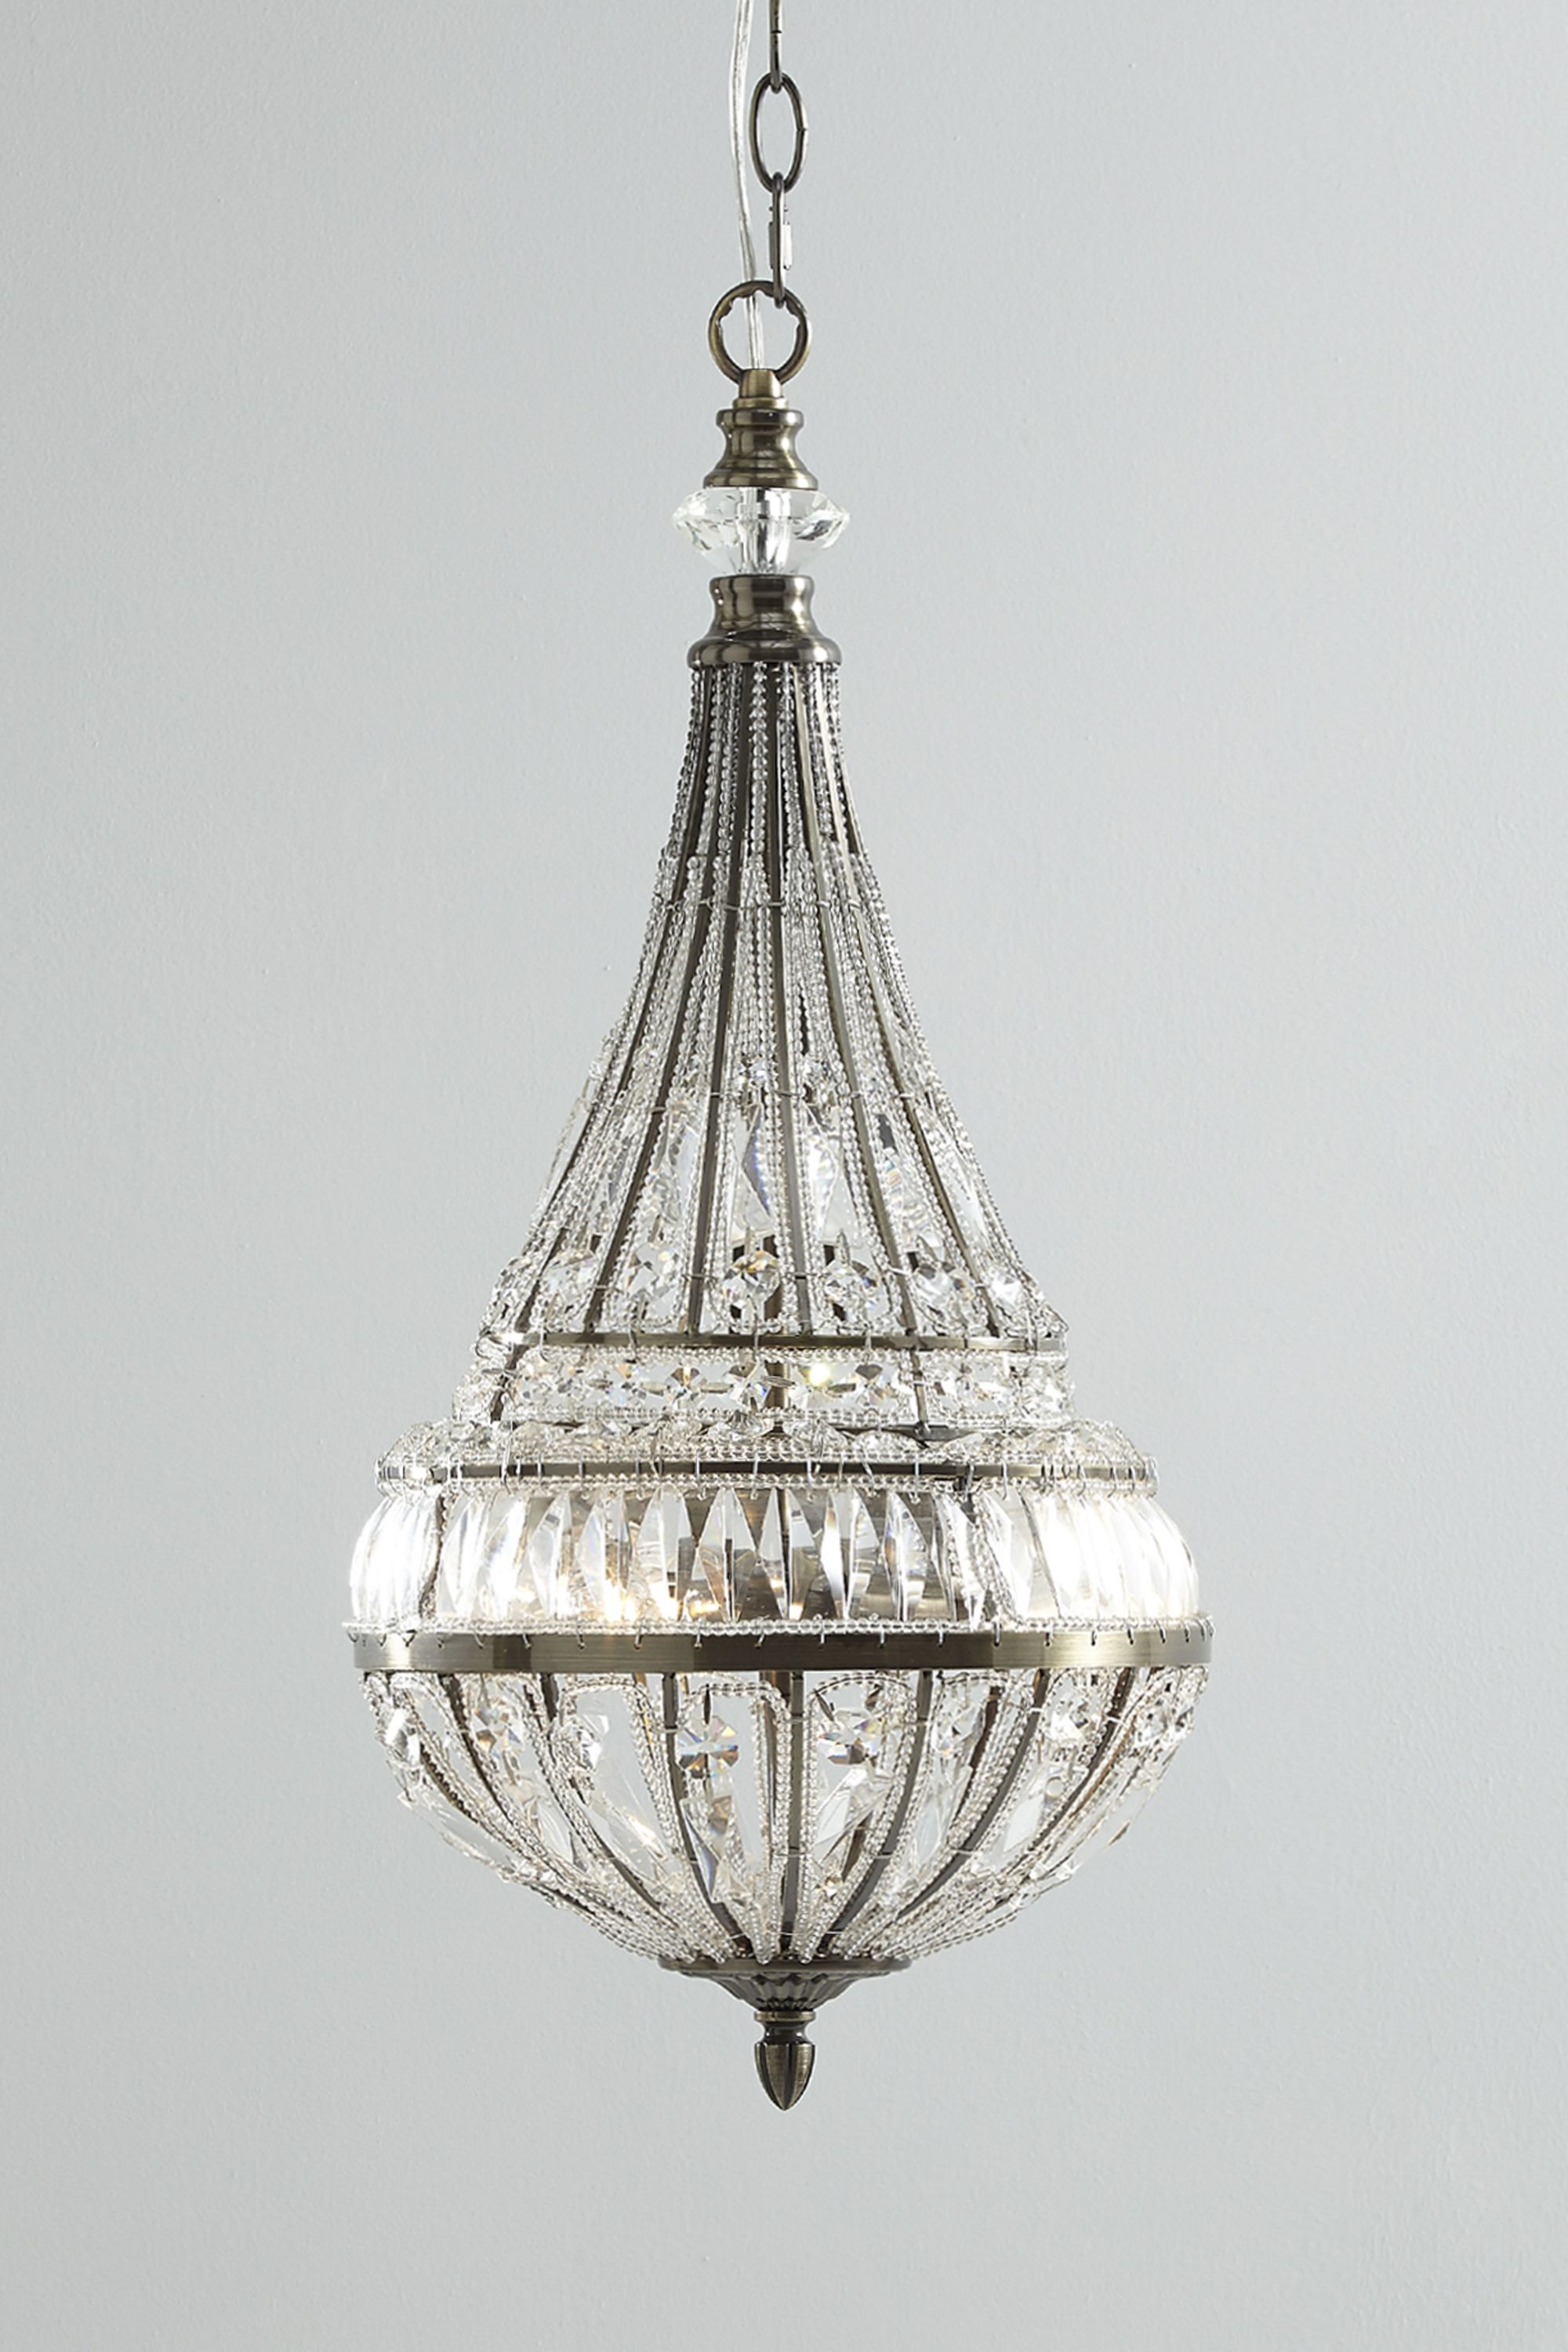 Annecy chandelier bhs spring pinterest annecy chandelier bhs aloadofball Choice Image